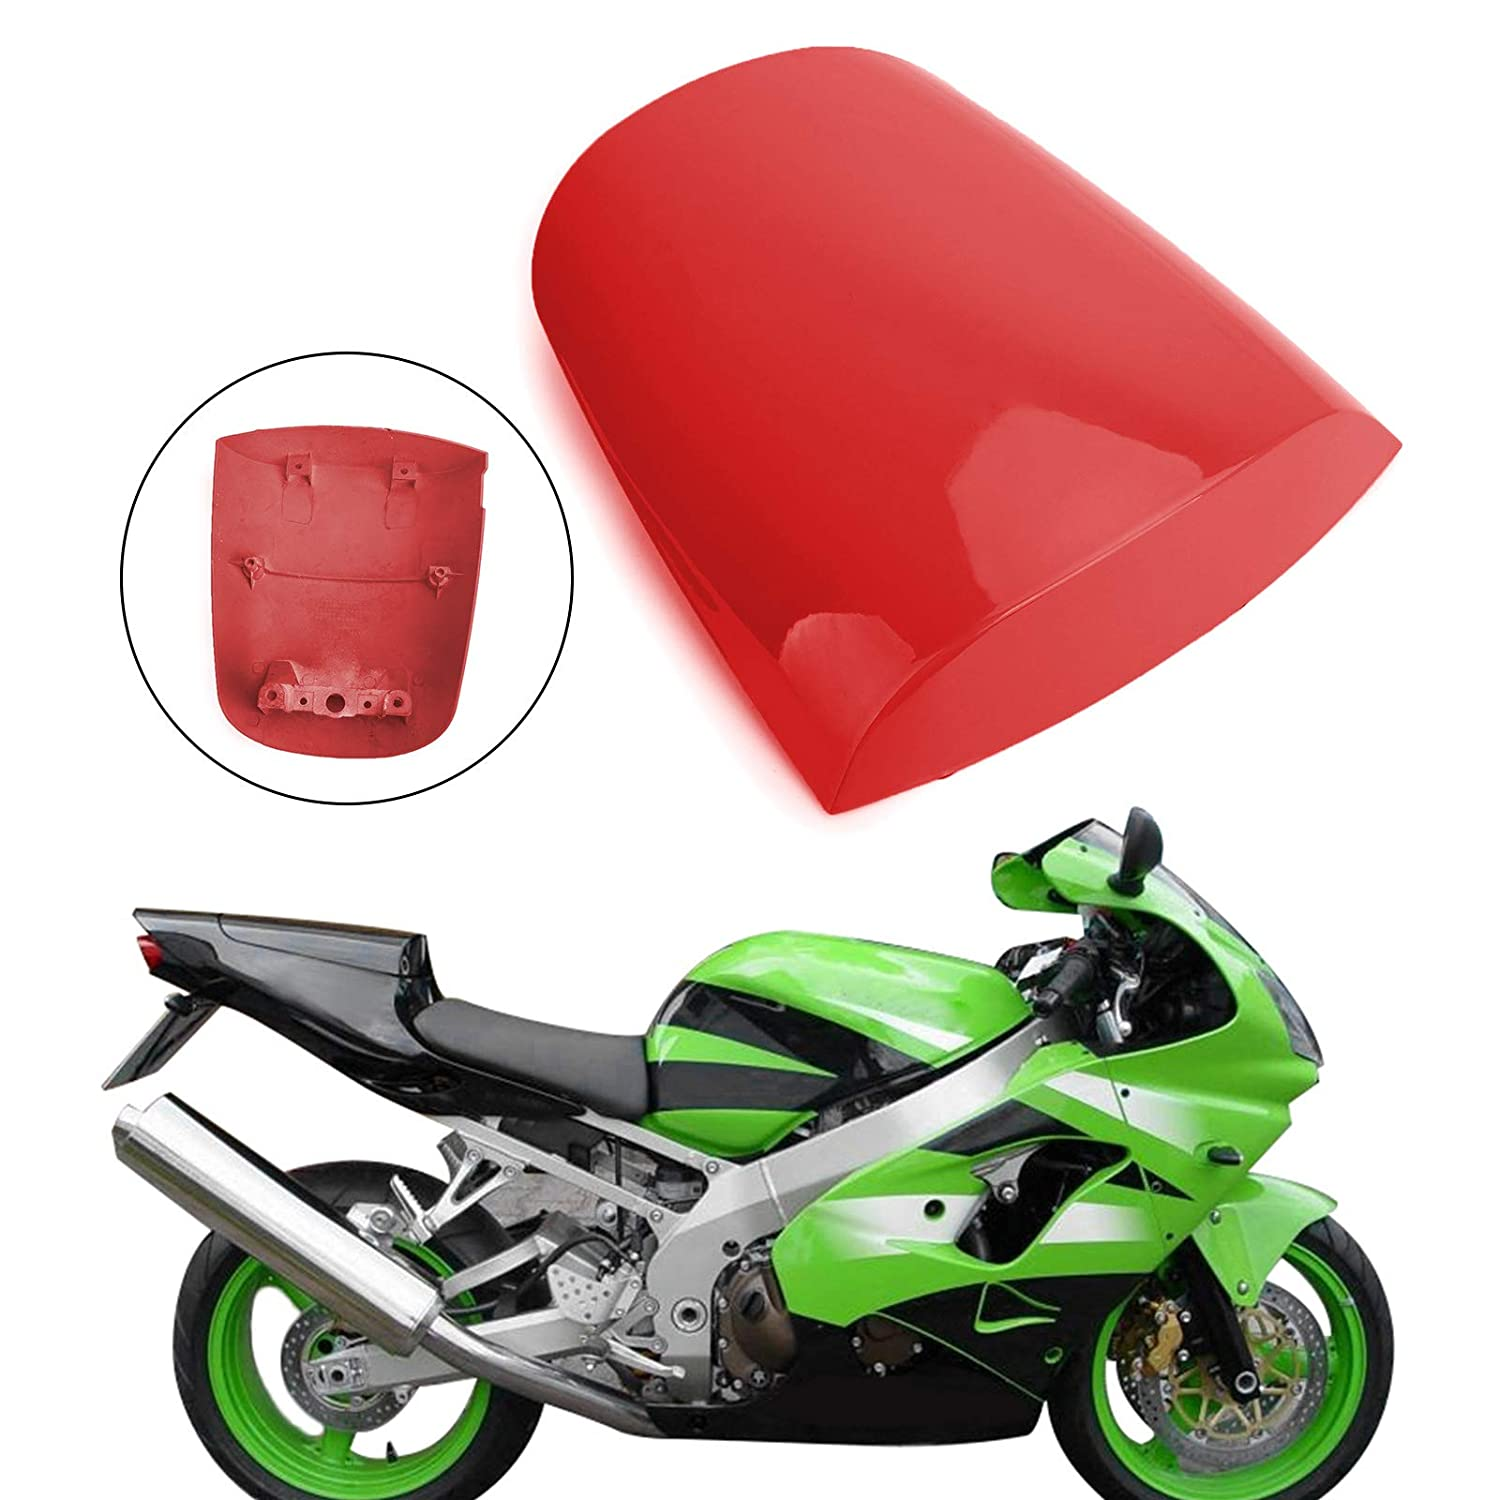 Red JFG RACING Motorcycle Rear Seat Cowl Passenger Pillion Fairing Tail Cover For Kawasaki 2003-2004 ZX6R,2003-2006 Z1000,2003-2006 Z750